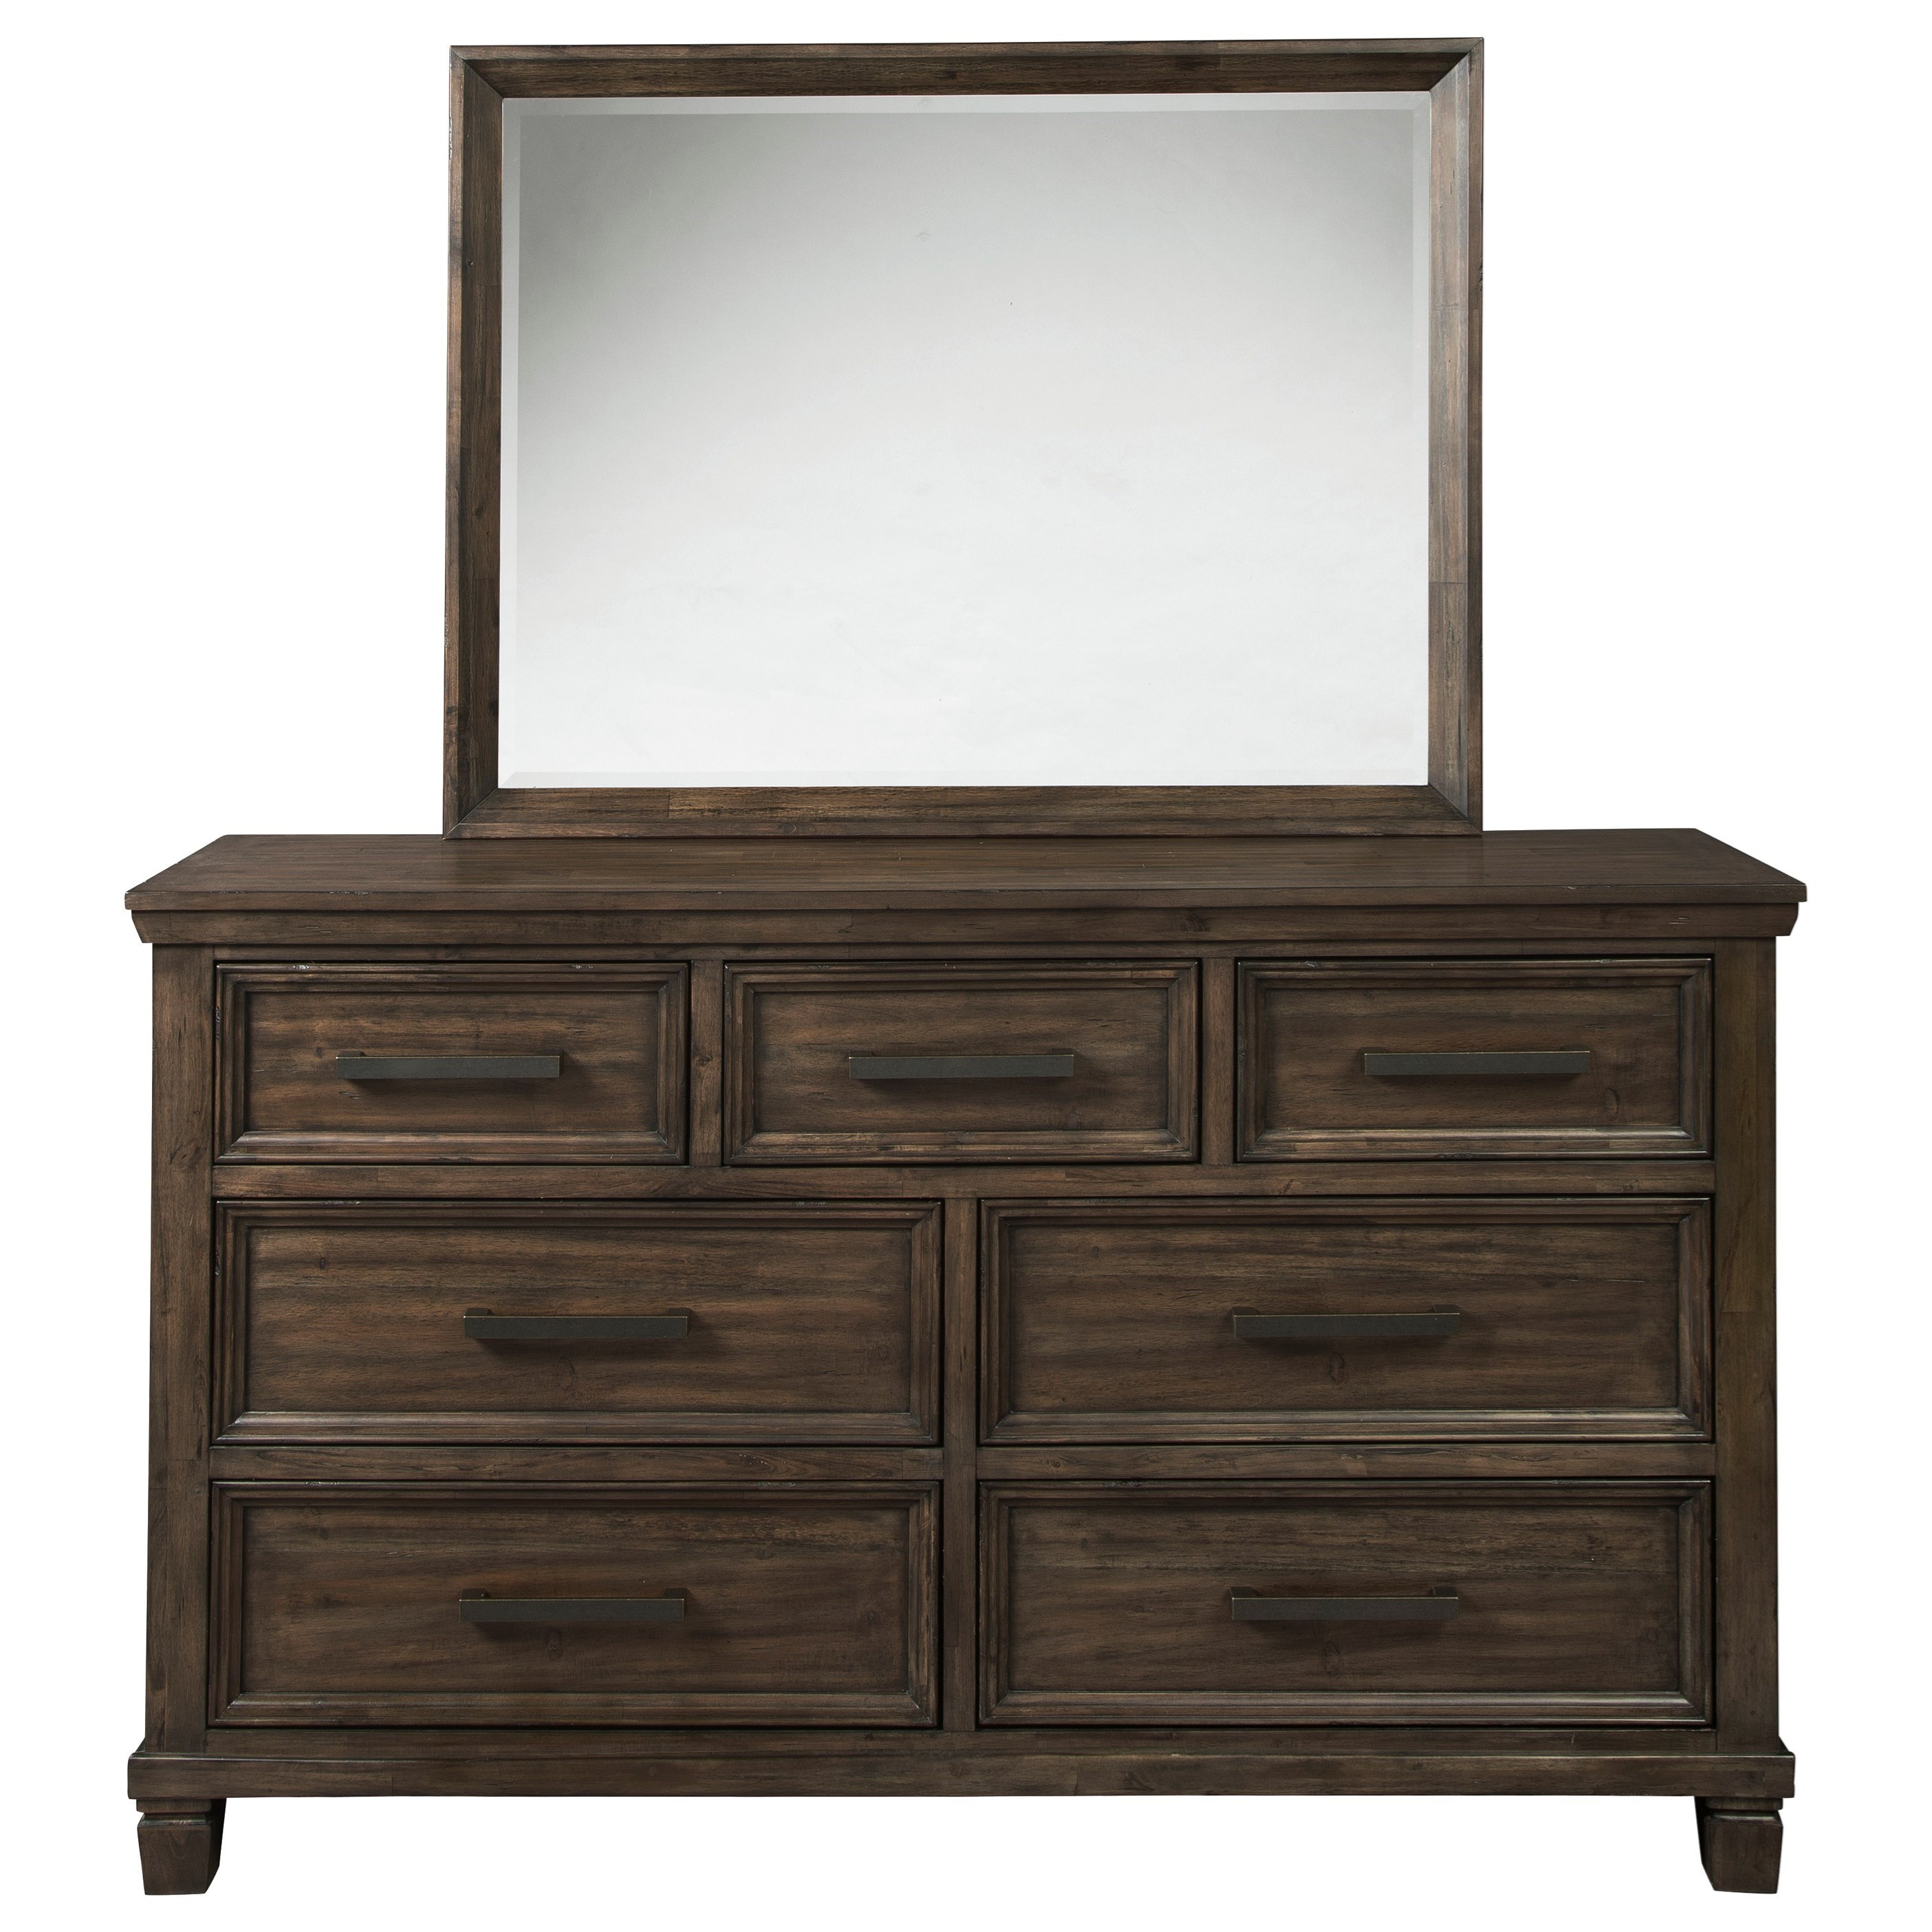 Johurst Dresser and Mirror Set by Signature at Walker's Furniture